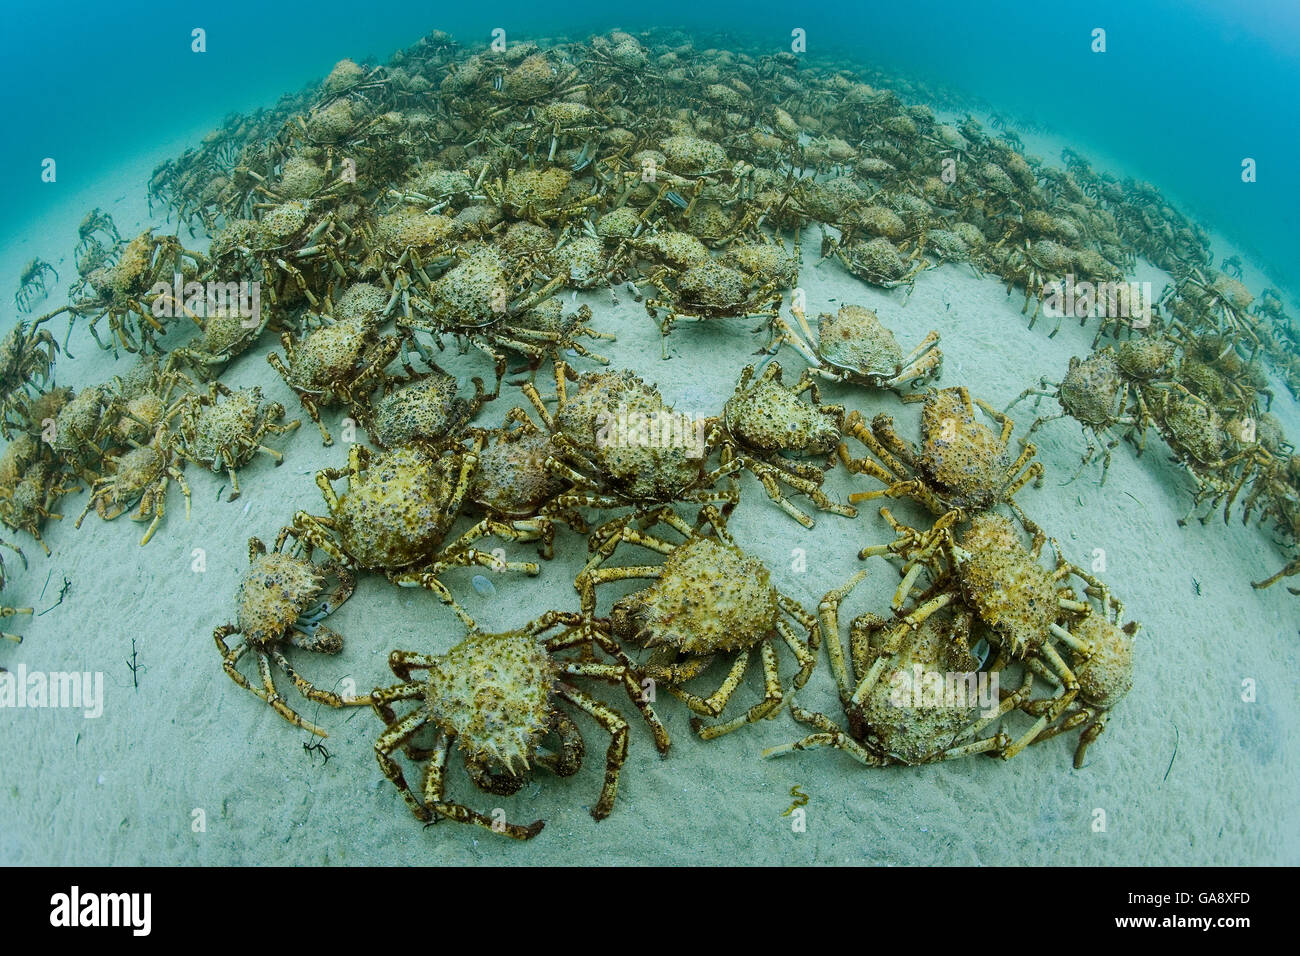 Aggregation of thousands of Spider crabs (Leptomithrax gaimardii) for moulting, South Australia Basin, Australia. - Stock Image